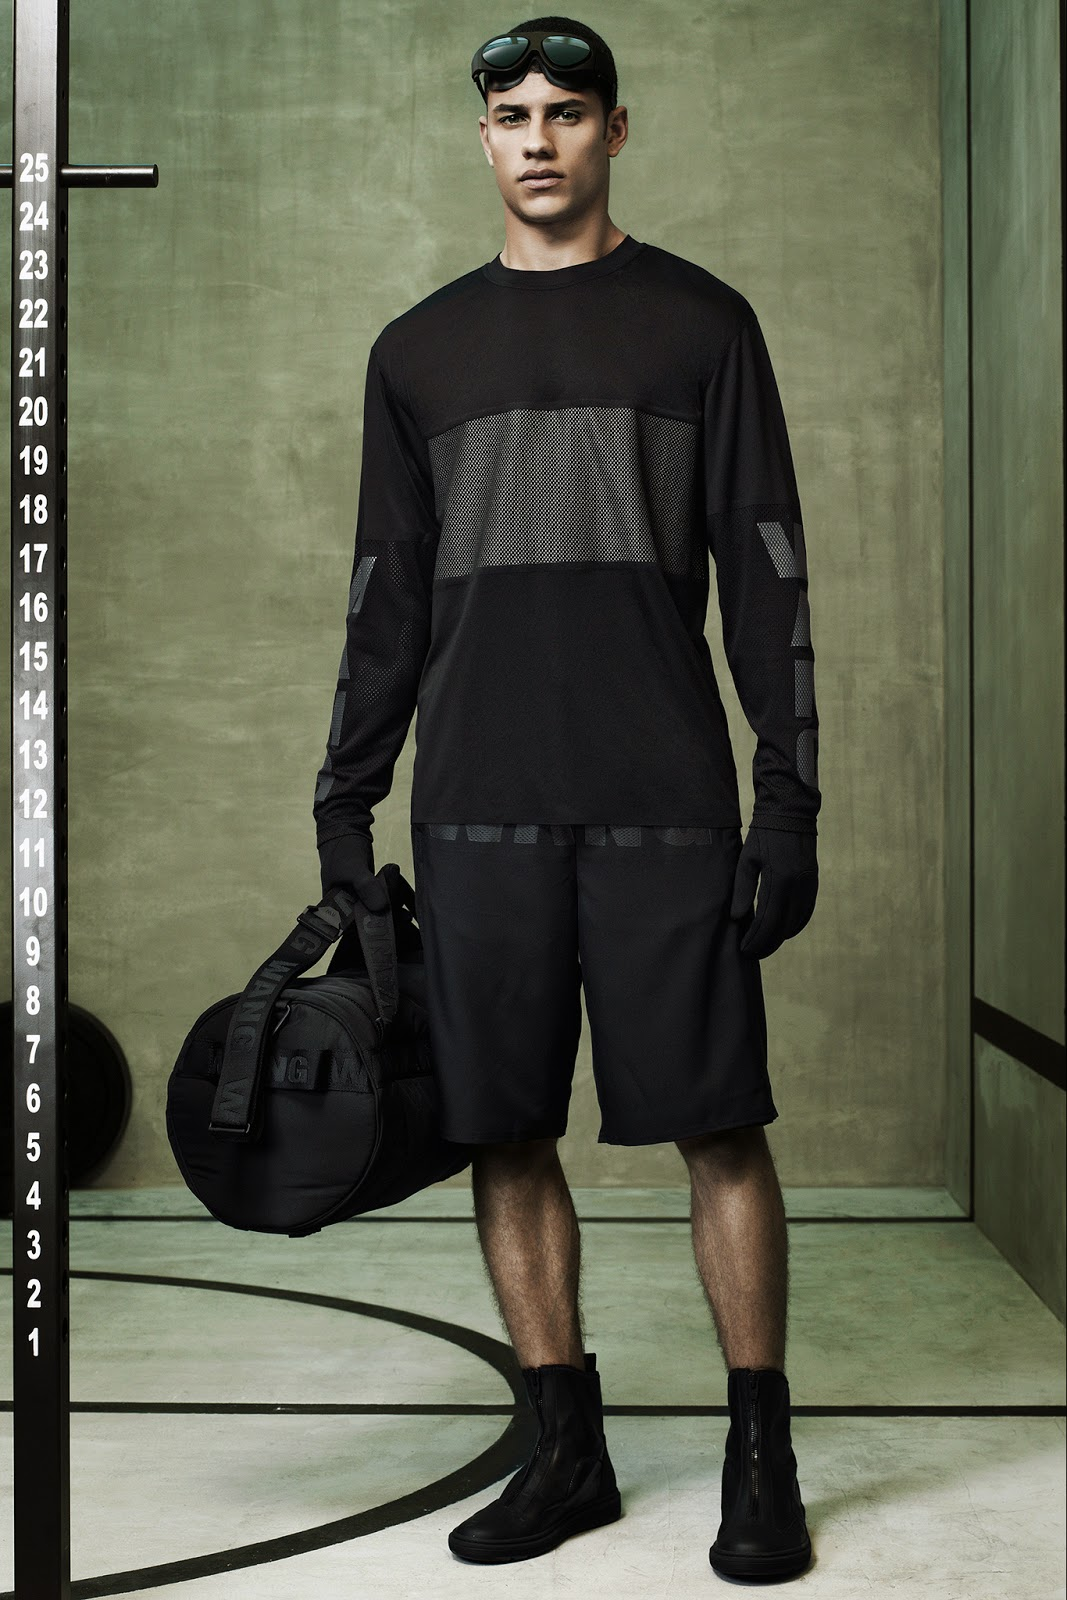 the style sorbet, fashion, fashion blog, style blog, fashion blogger, dubai fashion blog, dubai fashion blogger, alexander wang, hm, h&m, collaboration, collection, designer, brand, lookbook, preview